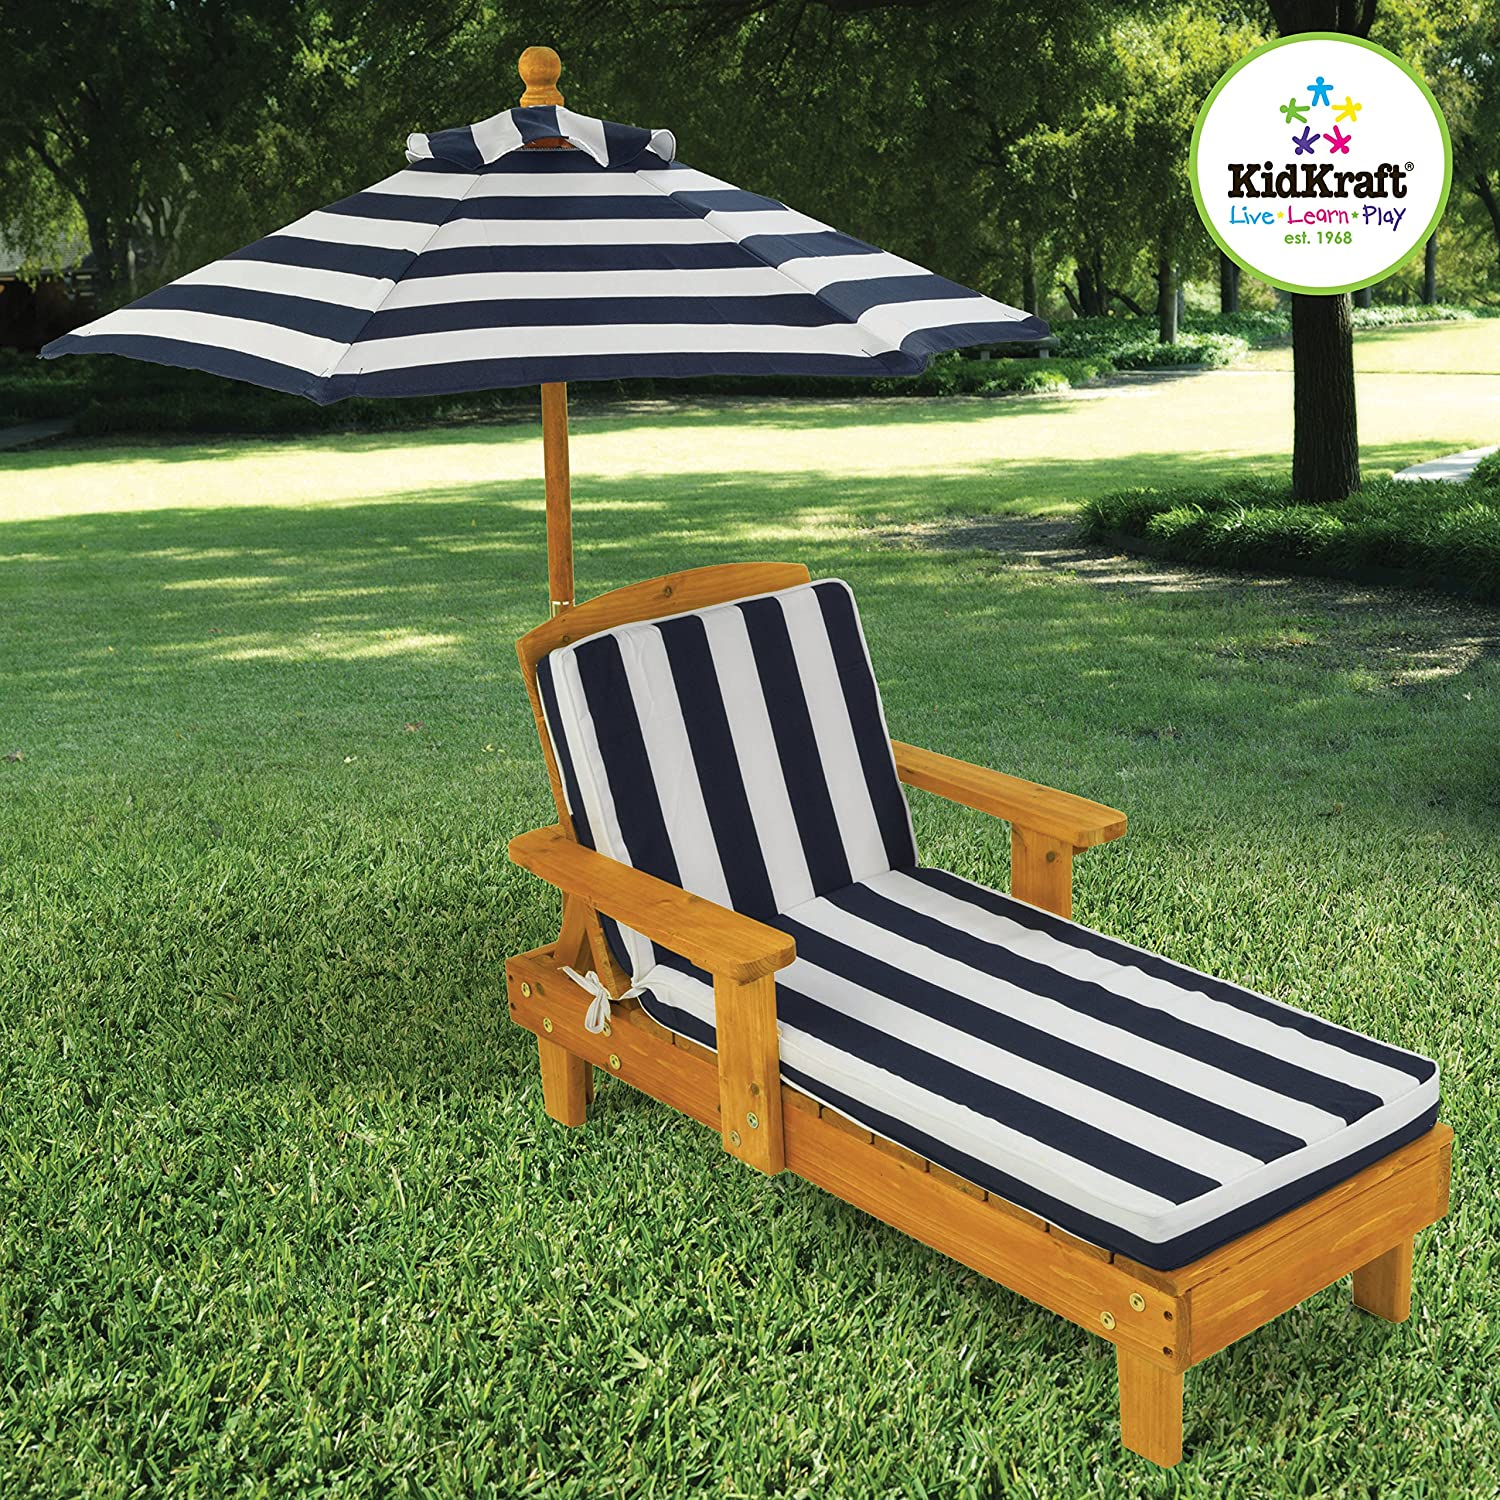 Wood lounge chairs qty 4 striped fabric with adjustable heights - Wood Lounge Chairs Qty 4 Striped Fabric With Adjustable Heights 45